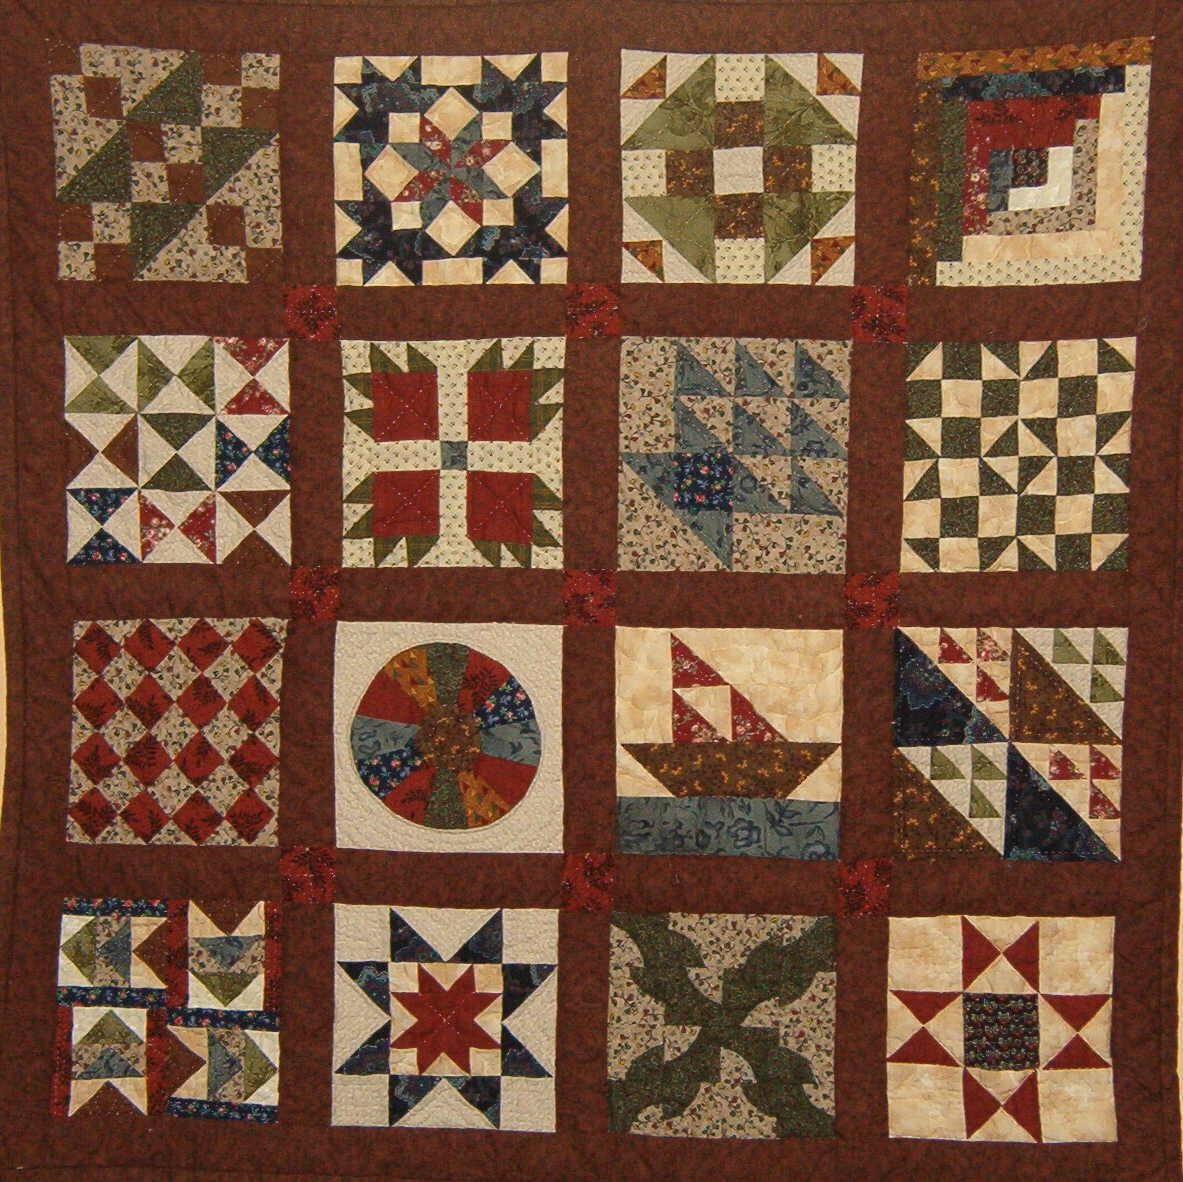 Underground Railroad Quilt Patterns Magnificent Design Ideas